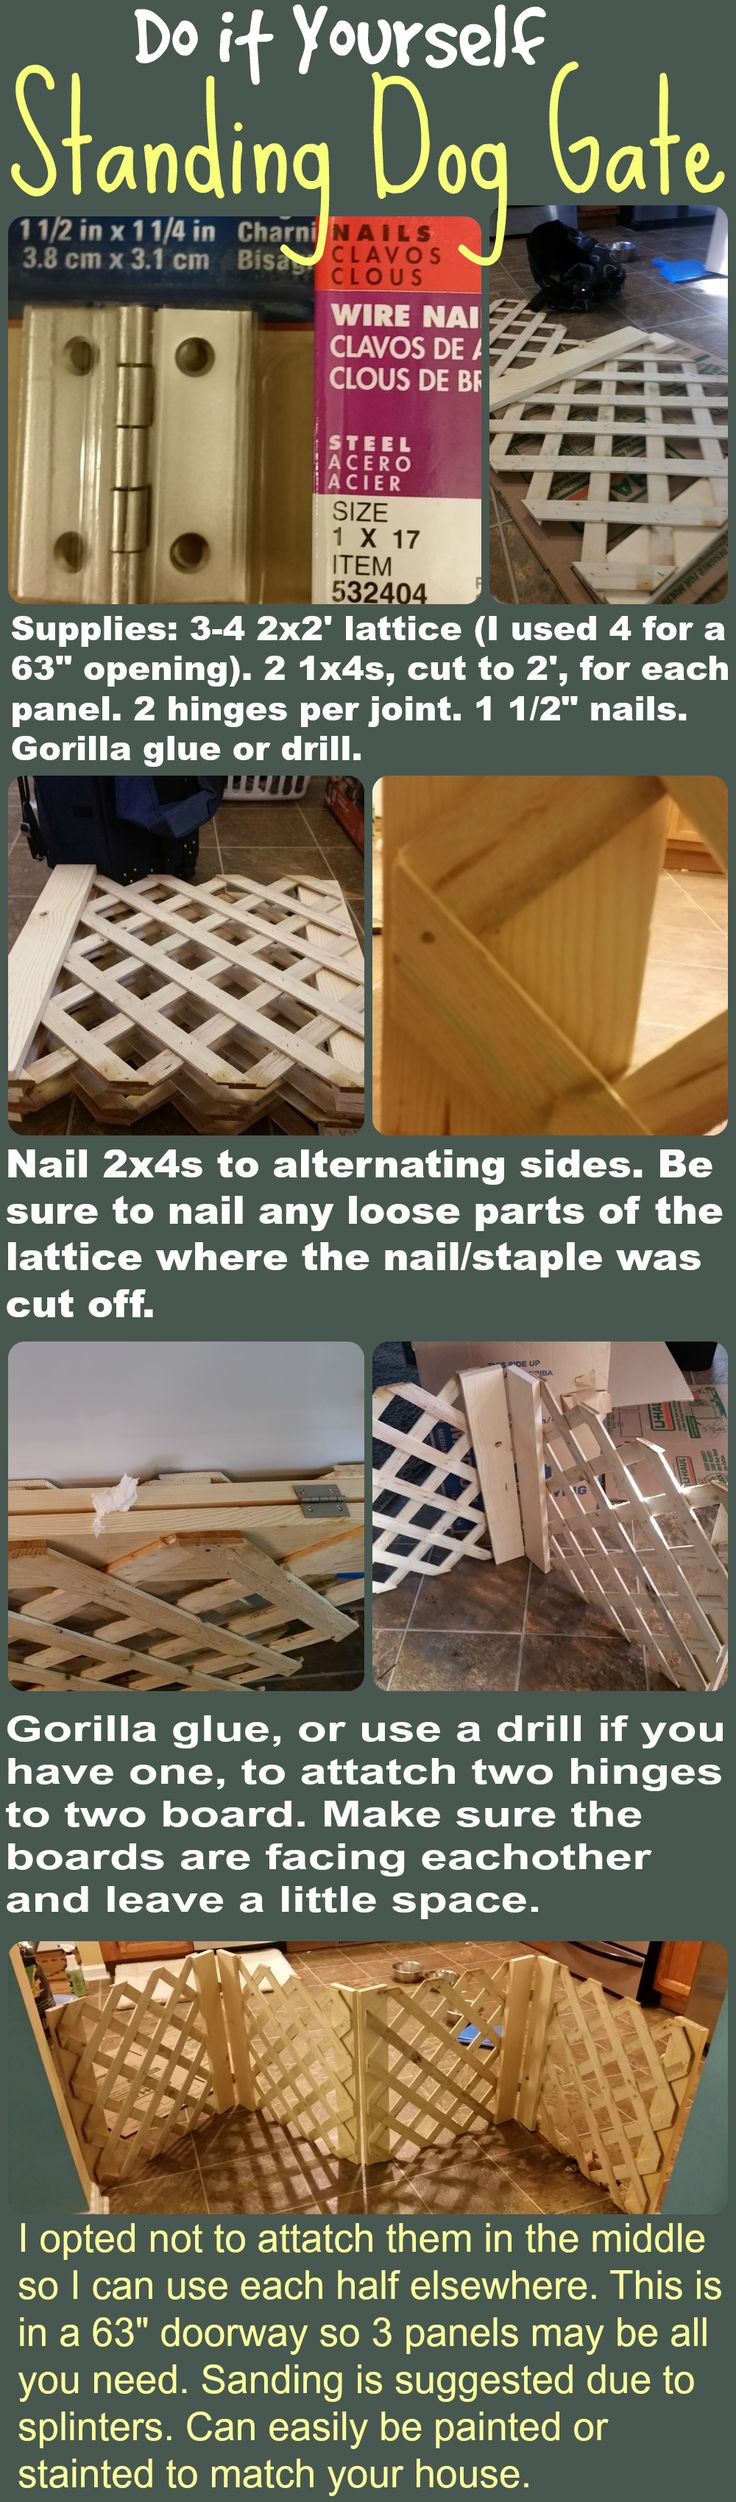 """DIY Standing Dog Gate! Why spend 120$ when you can spend 25$? All you need is: 2x2' panels of lattice, two 1x4s (cut to 2') per panel, 1 1/2"""" nails, 2 hinges per joint, and gorilla glue (or a drill). I made two pieces, versus one long one with 4 panels, for my 63"""" opening so I can split them up and use them elsewhere if needed. 3 panels would be large and stable enough for most archways. Sanding is suggested to avoid splinters. The gate can easily be painted or stained to fit right in!"""